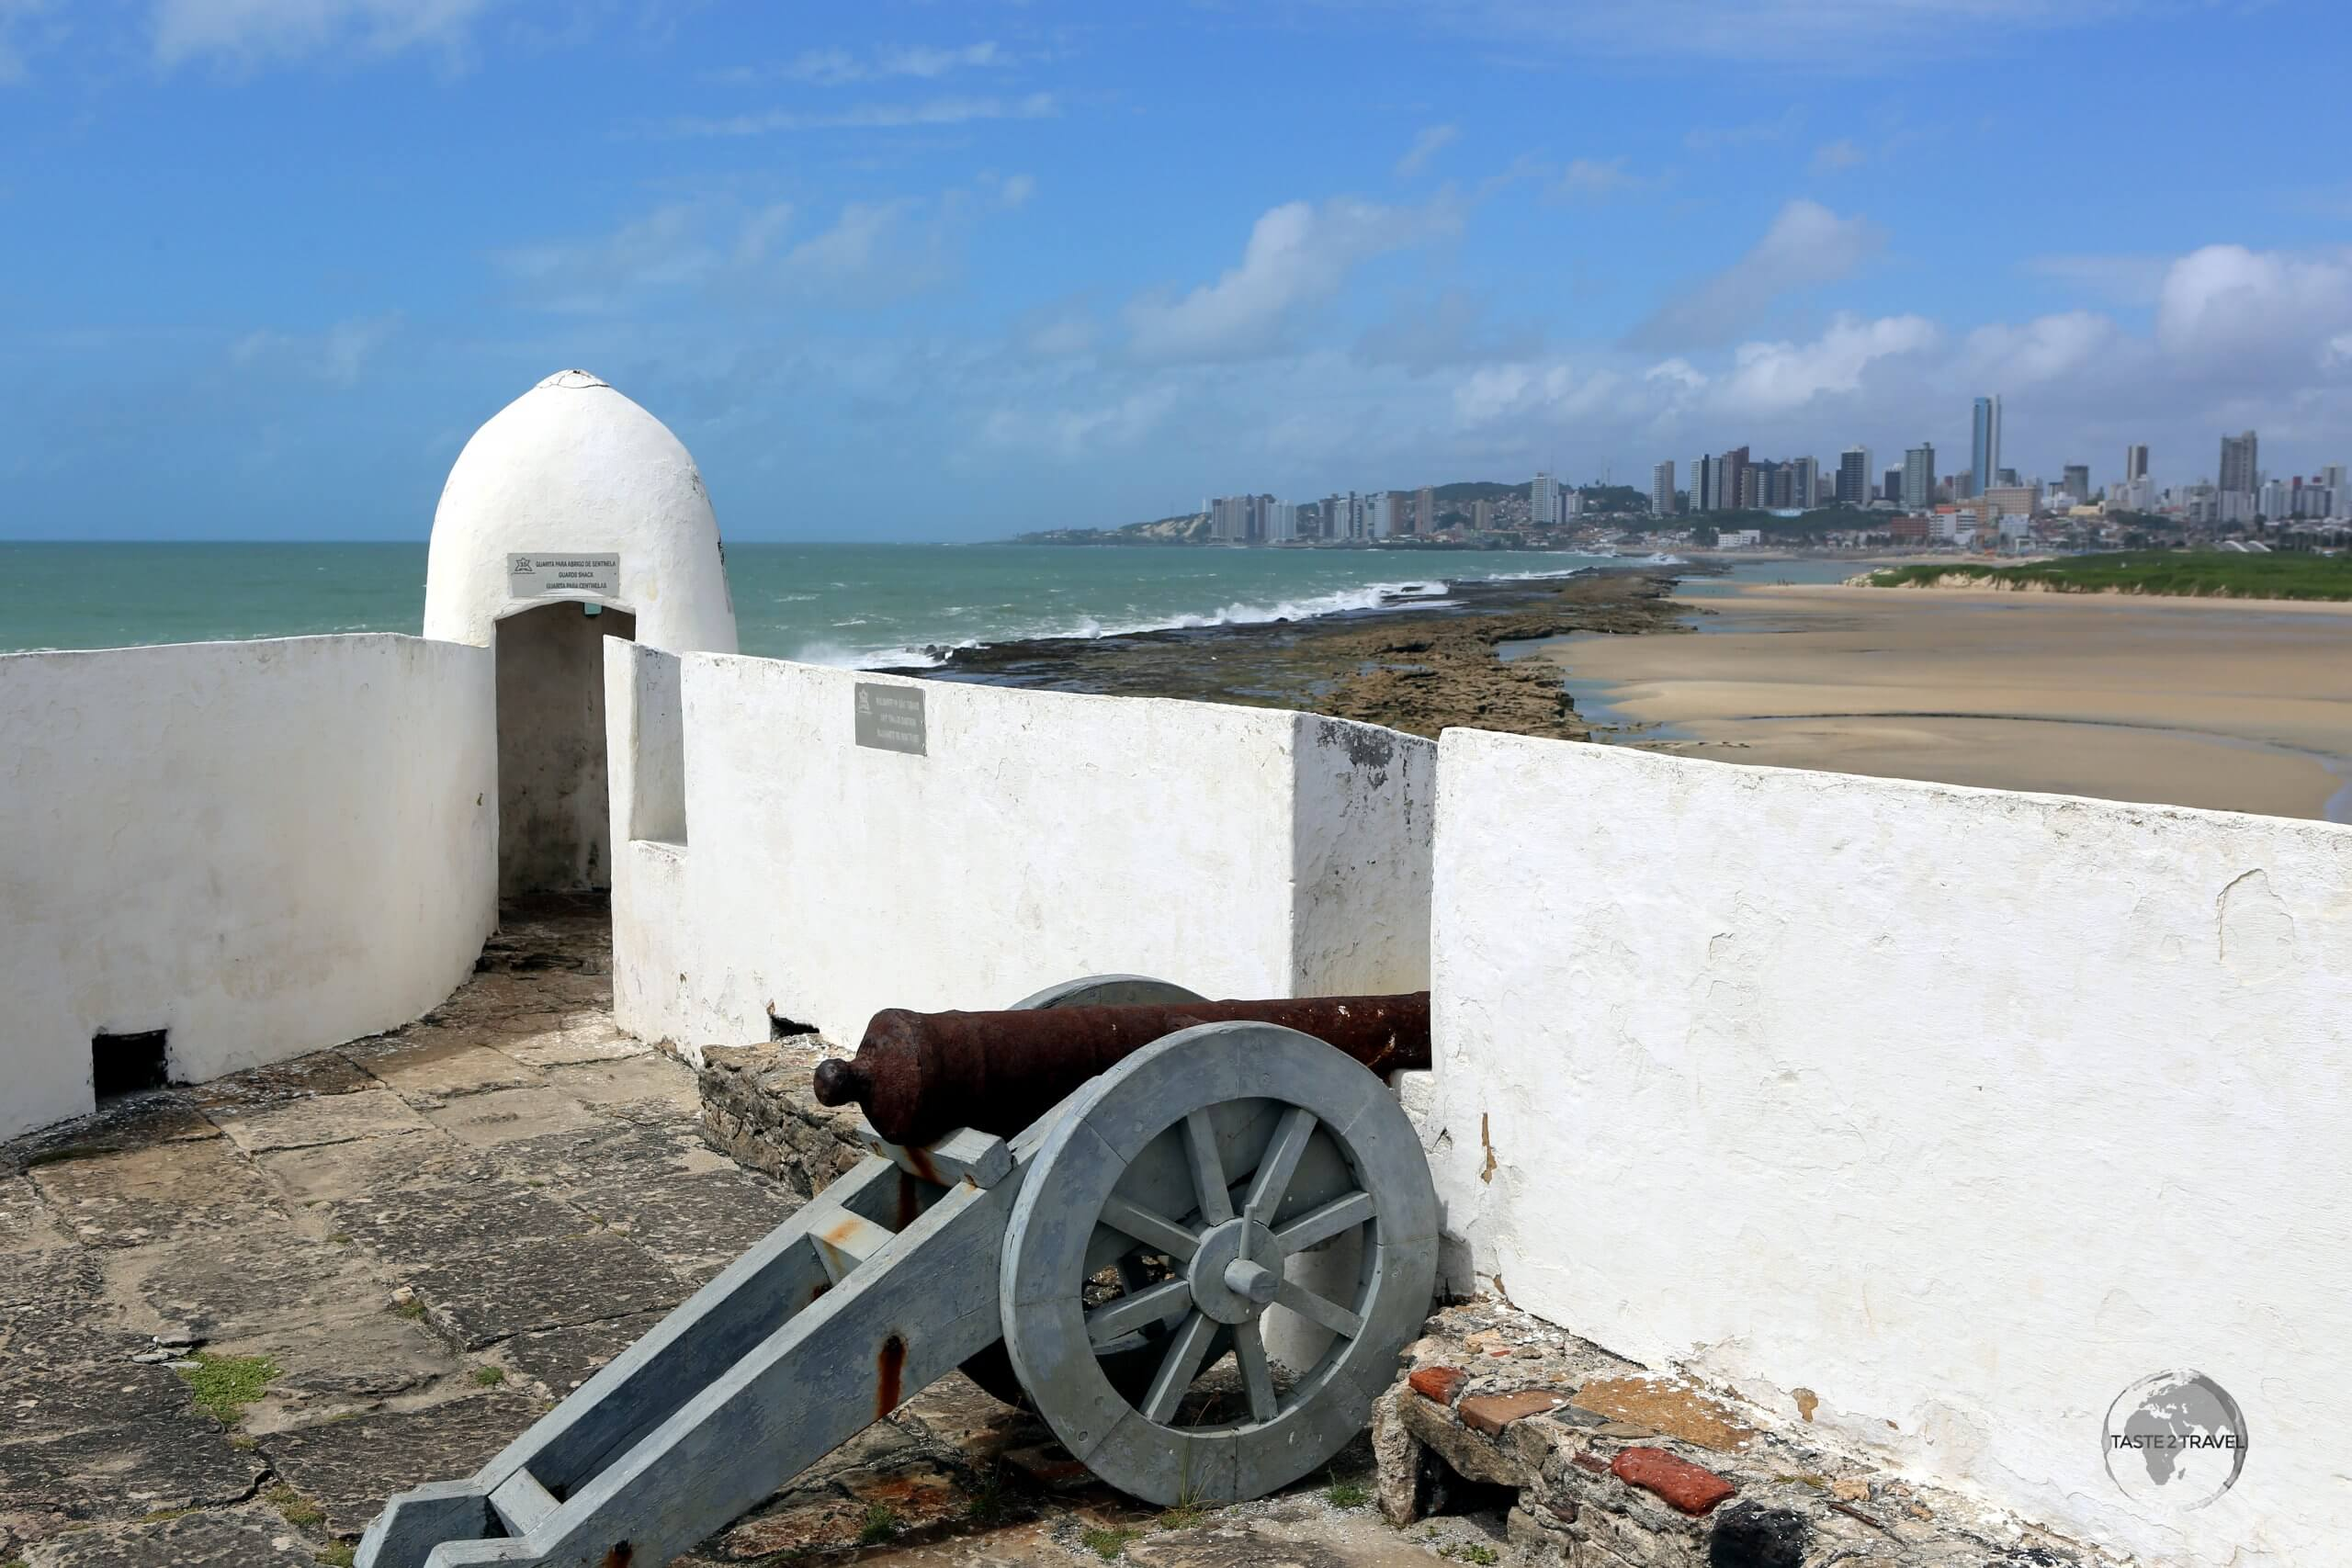 A view, from Forte dos Reis Magos, of the Atlantic coast and the city of Natal, capital of the Brazilian state of Rio Grande do Norte.